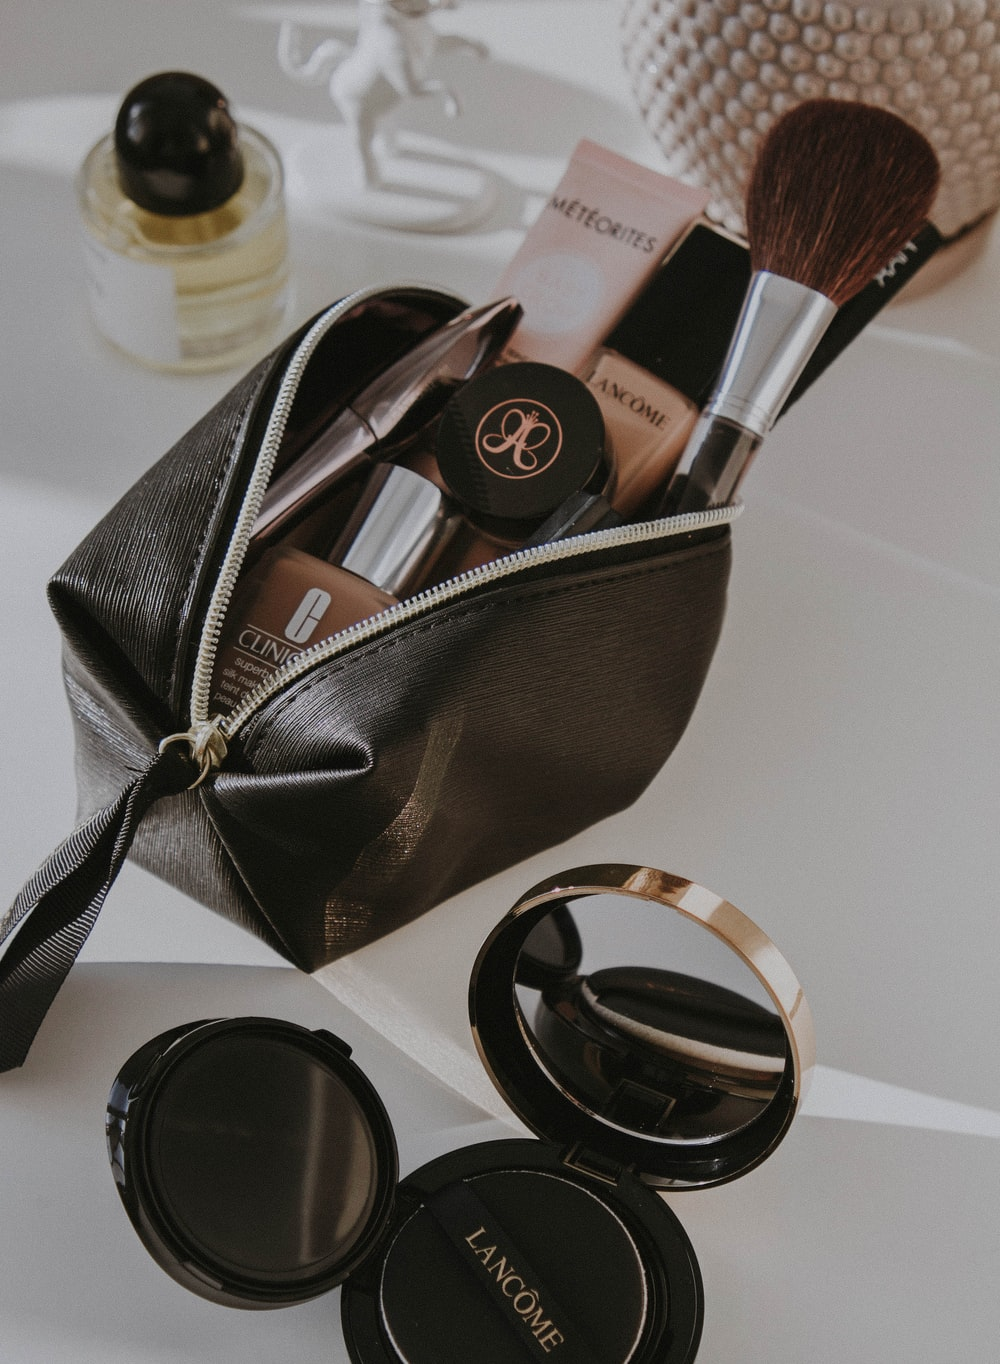 black leather bag with makeup brushes and makeup brushes